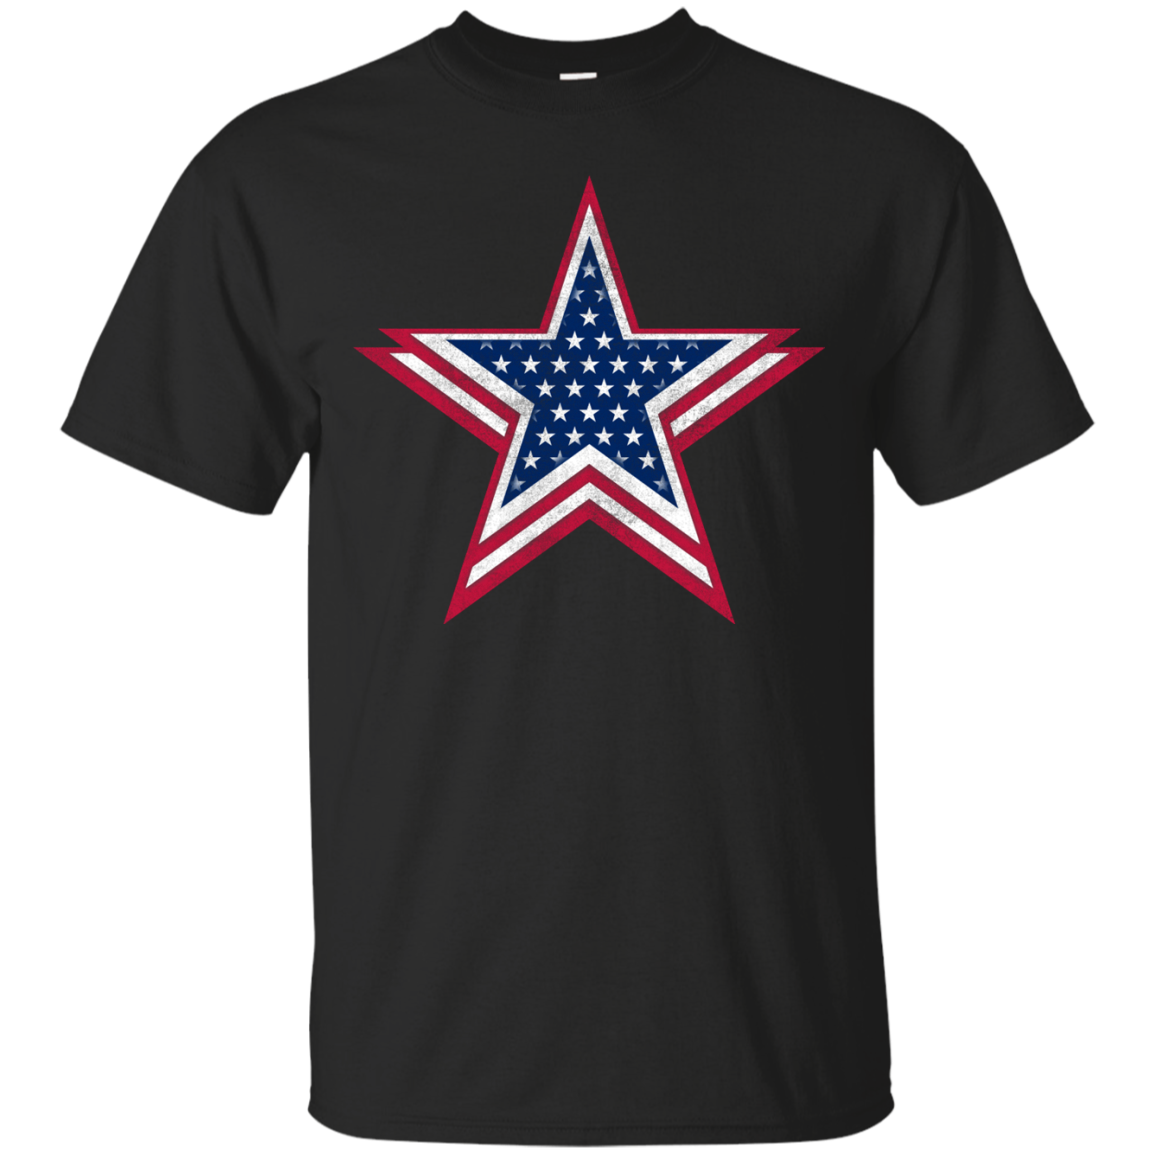 4th of July Big star 3 T-Shirt & Hoodie, Sweatshirt